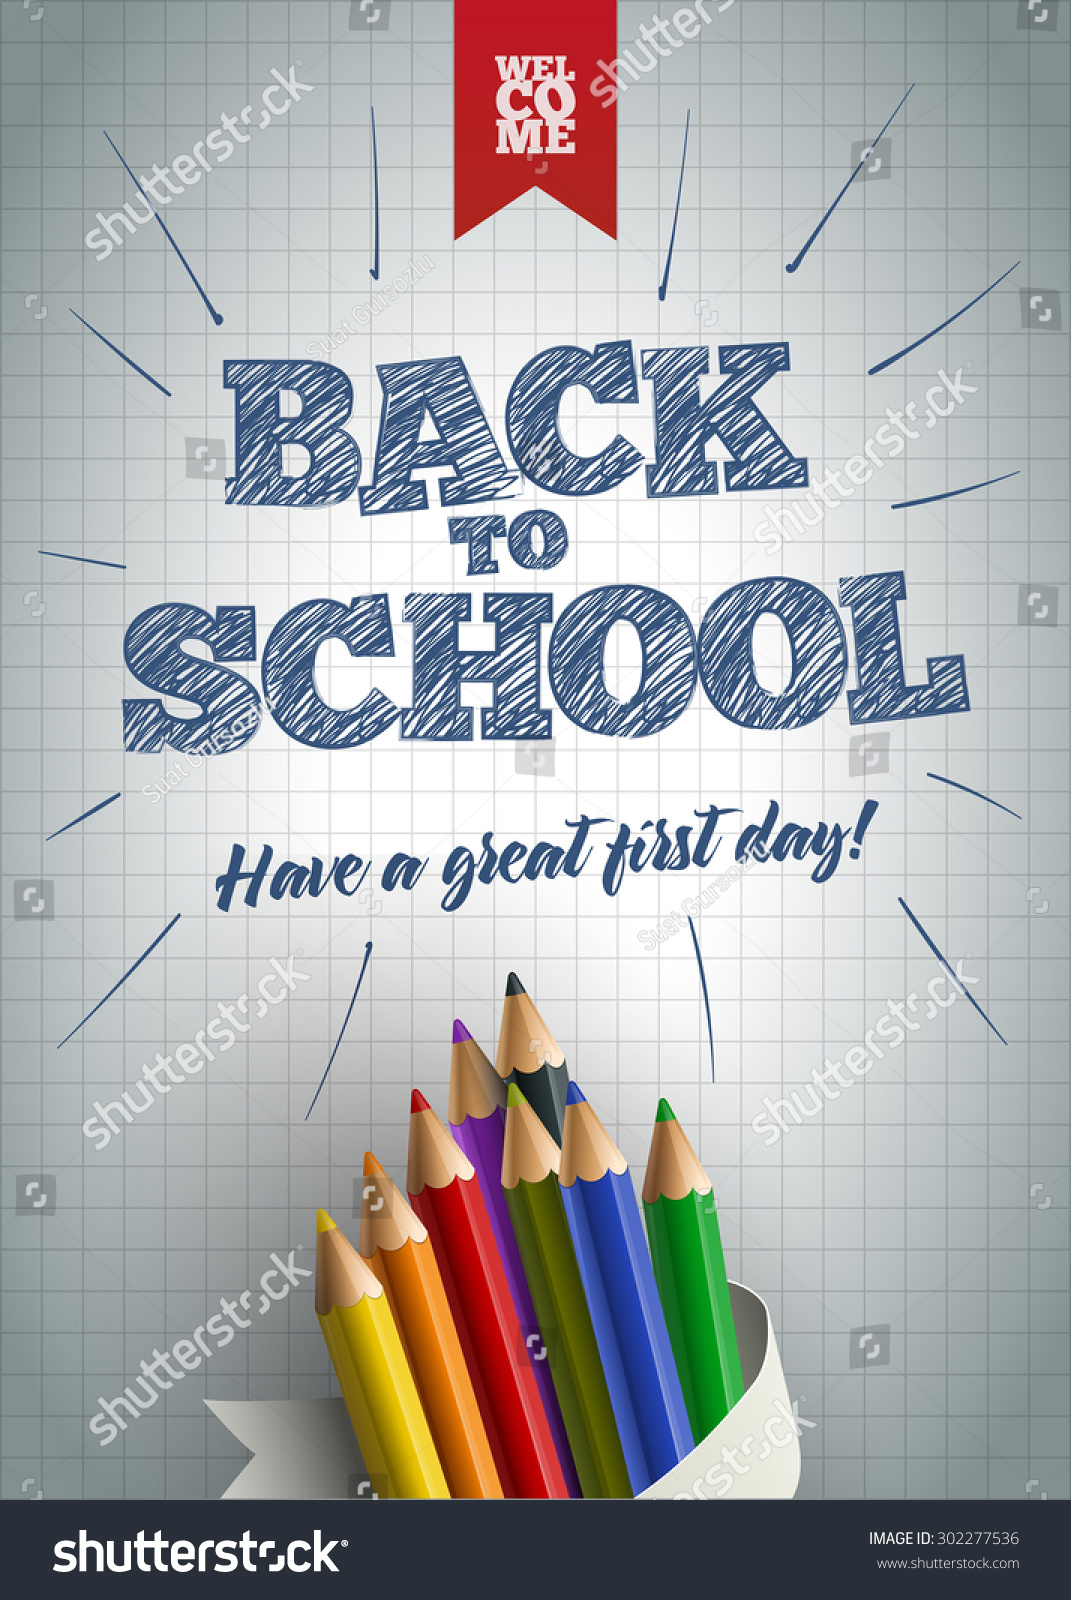 Poster design for school - Welcome Back To School Poster Design Template Hand Drawn Back To School Text With Colored